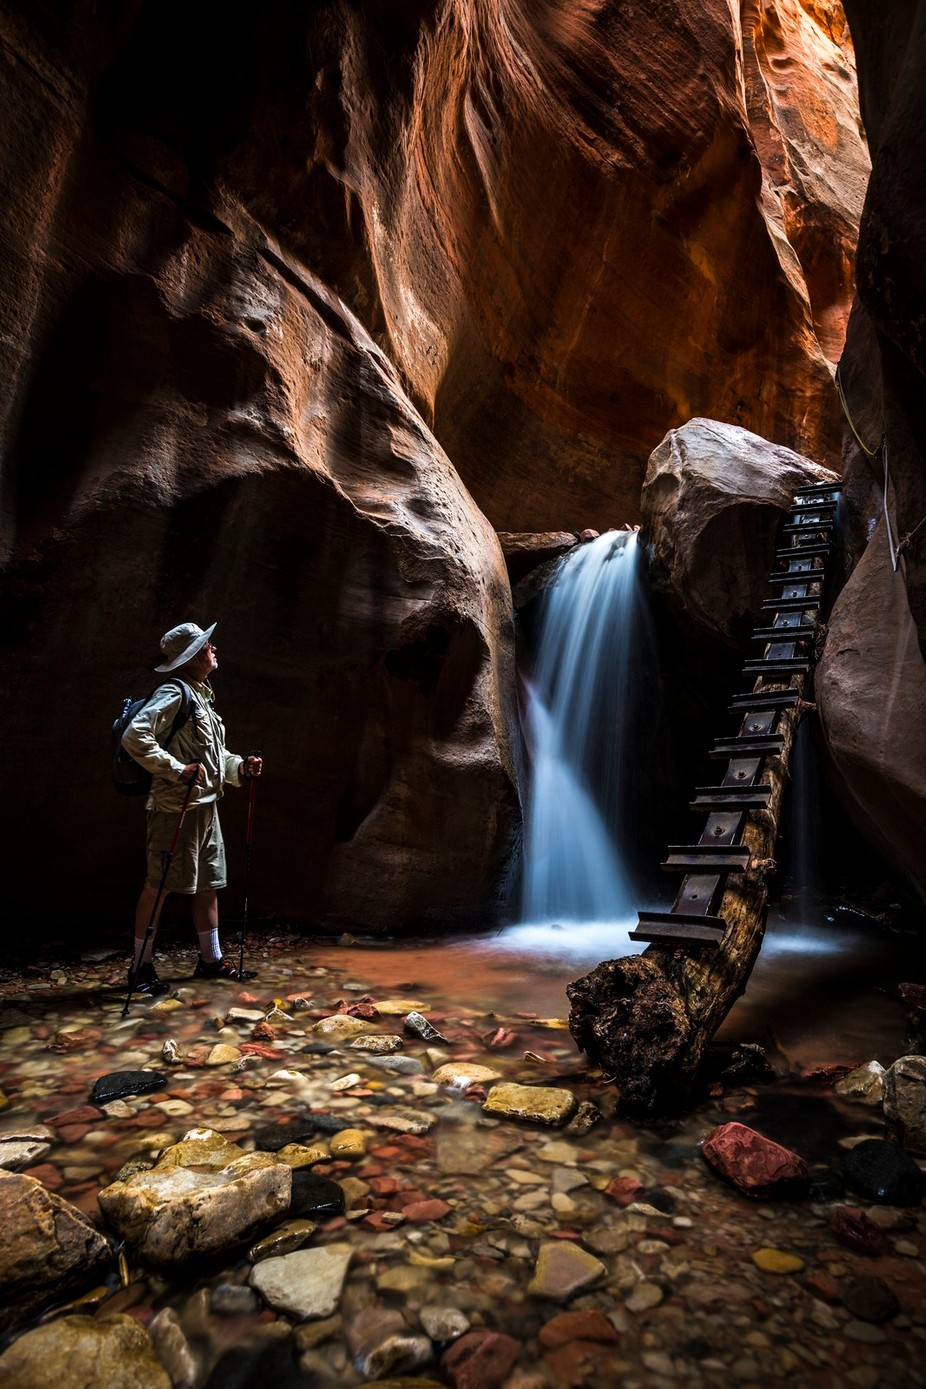 Kanarra Creek by jeremystevens_3464 - People And Waterfalls Photo Contest